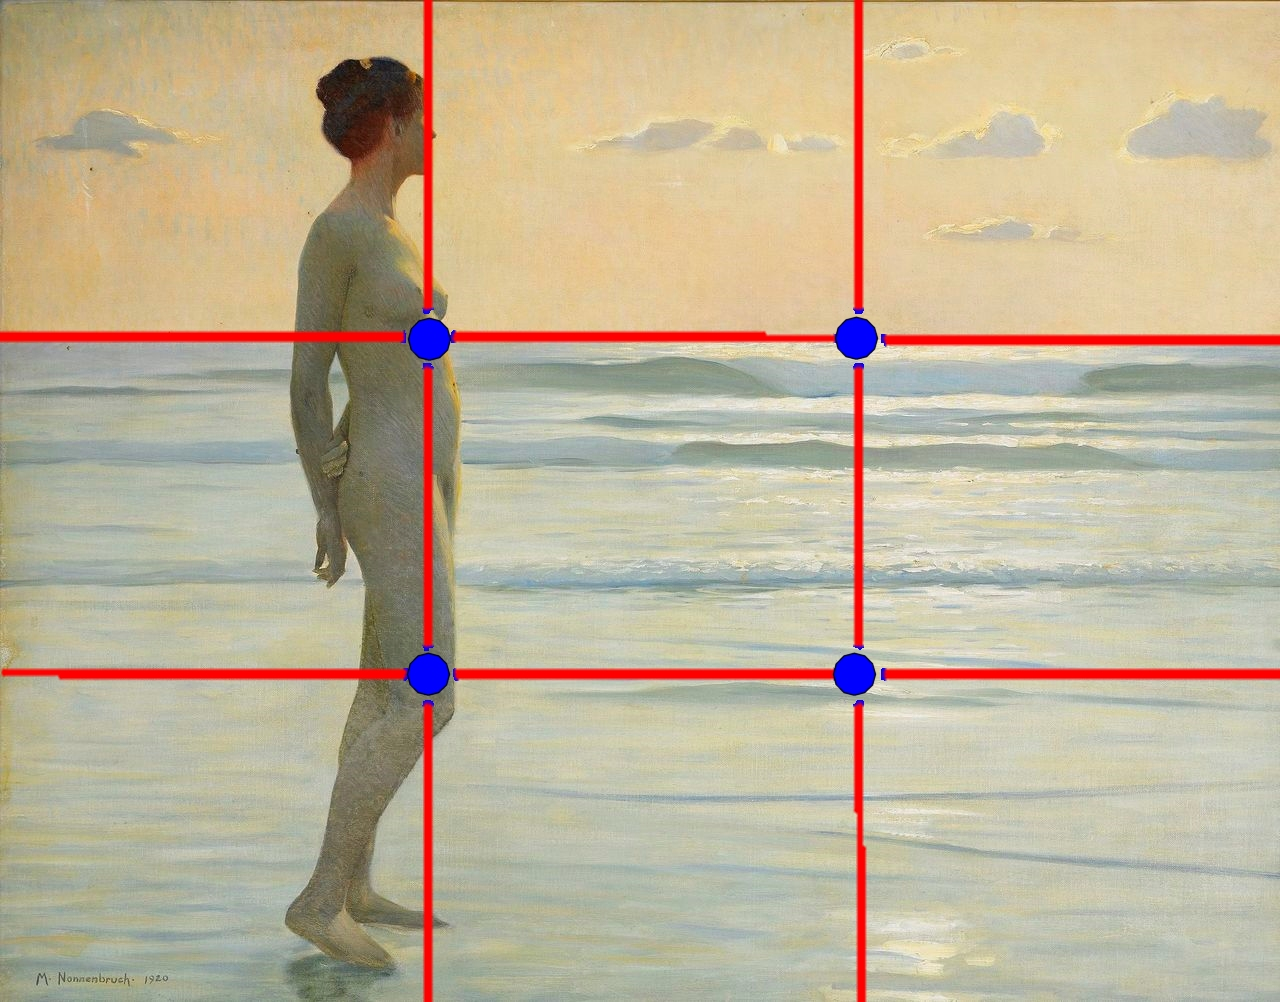 Rule of Thirds Grid Overlay on image of beach